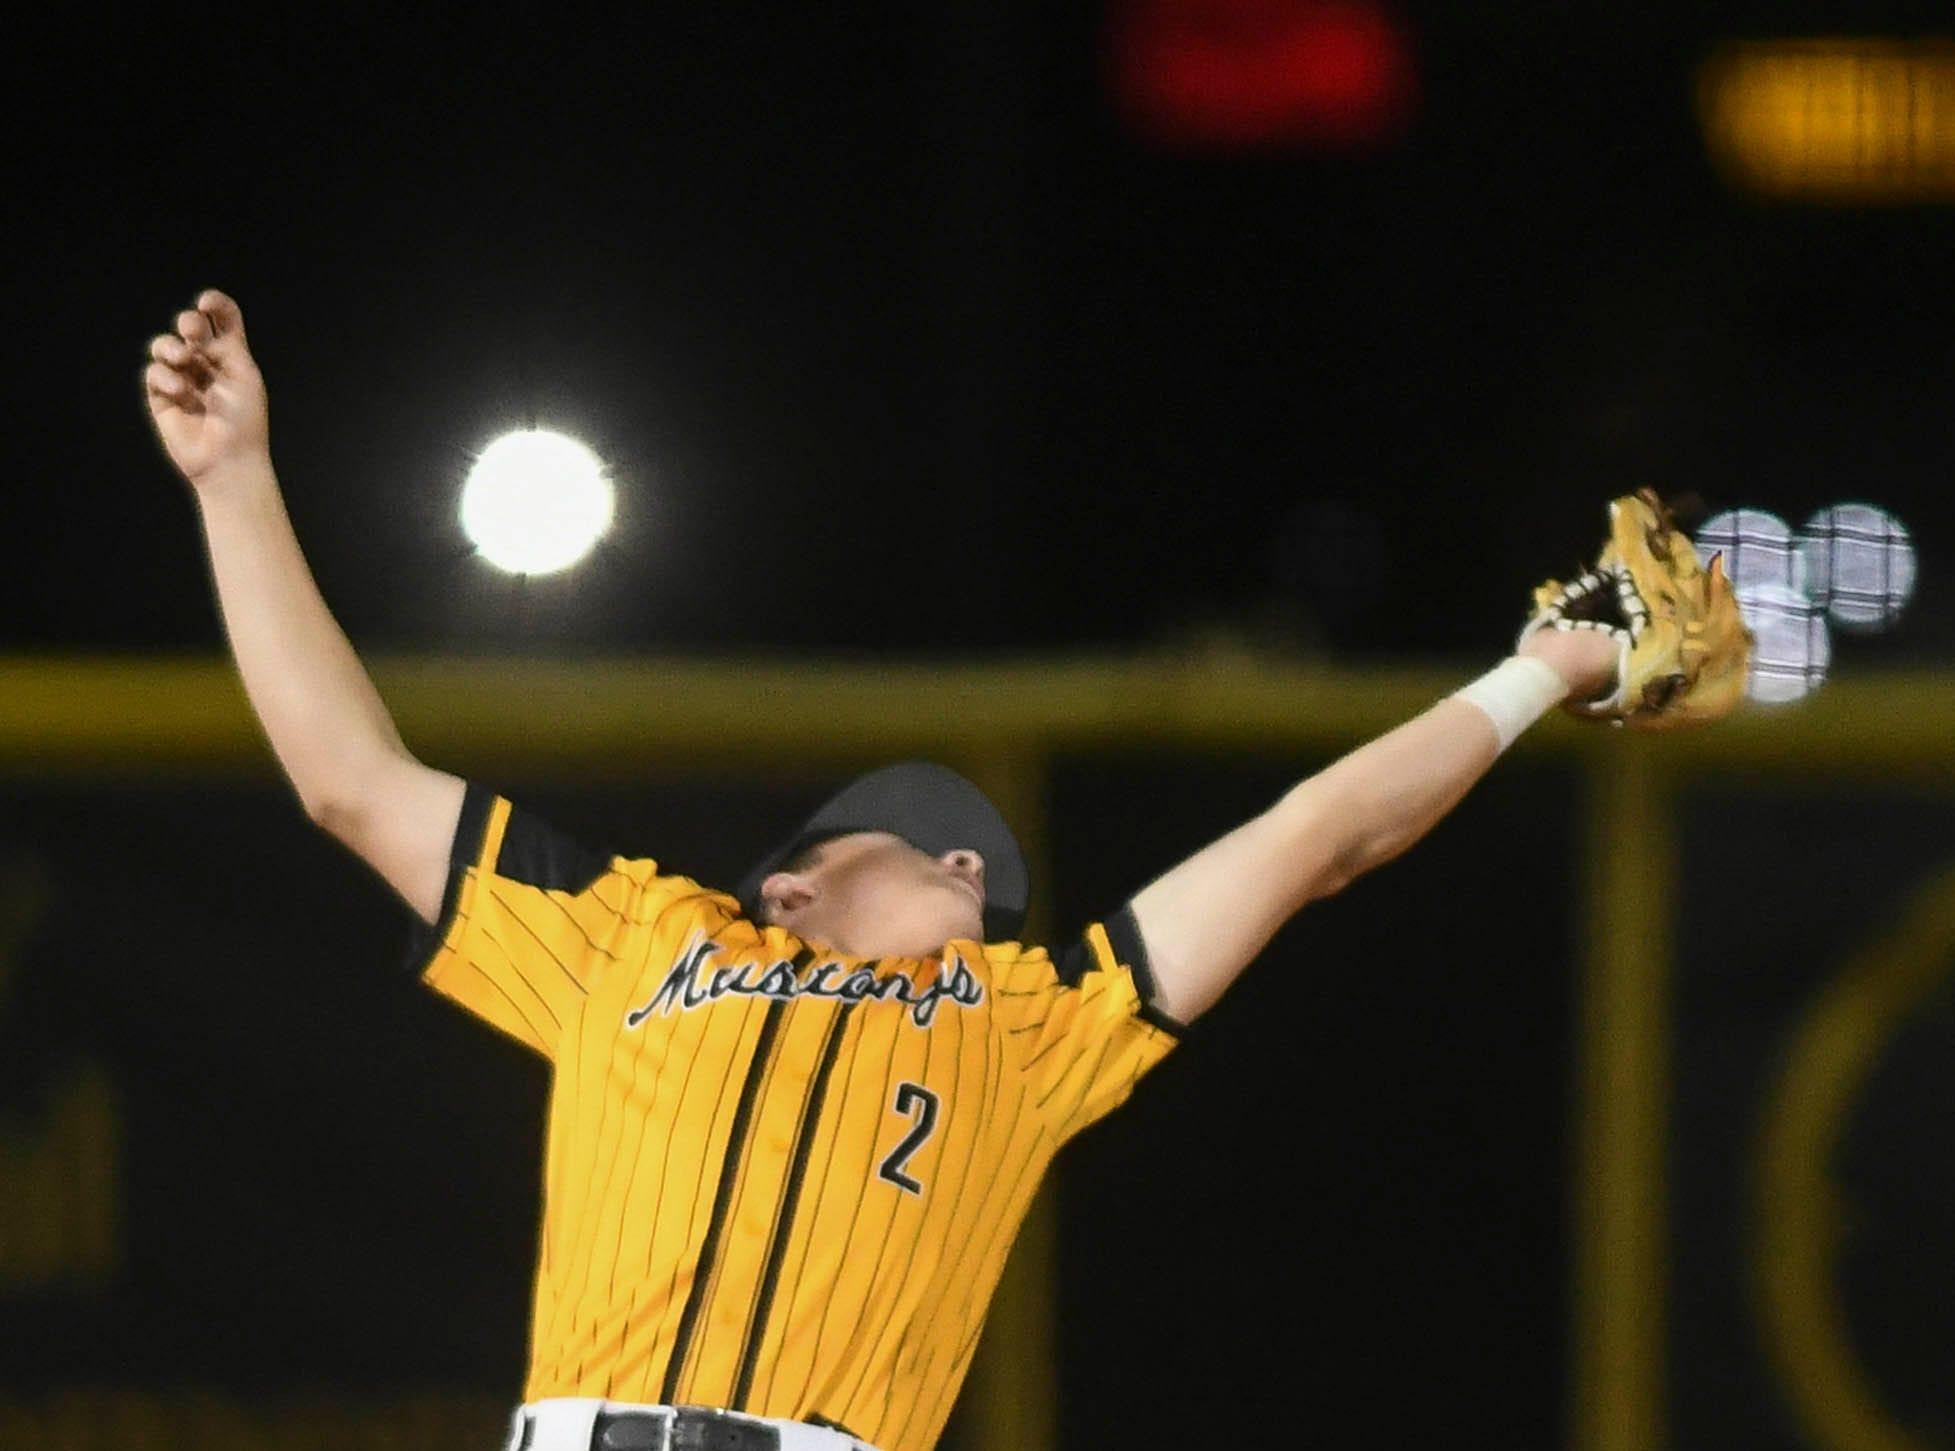 Anthony Cartagena of Merritt Island tracks down a fly balll during Tuesday's game against Eau Gallie.